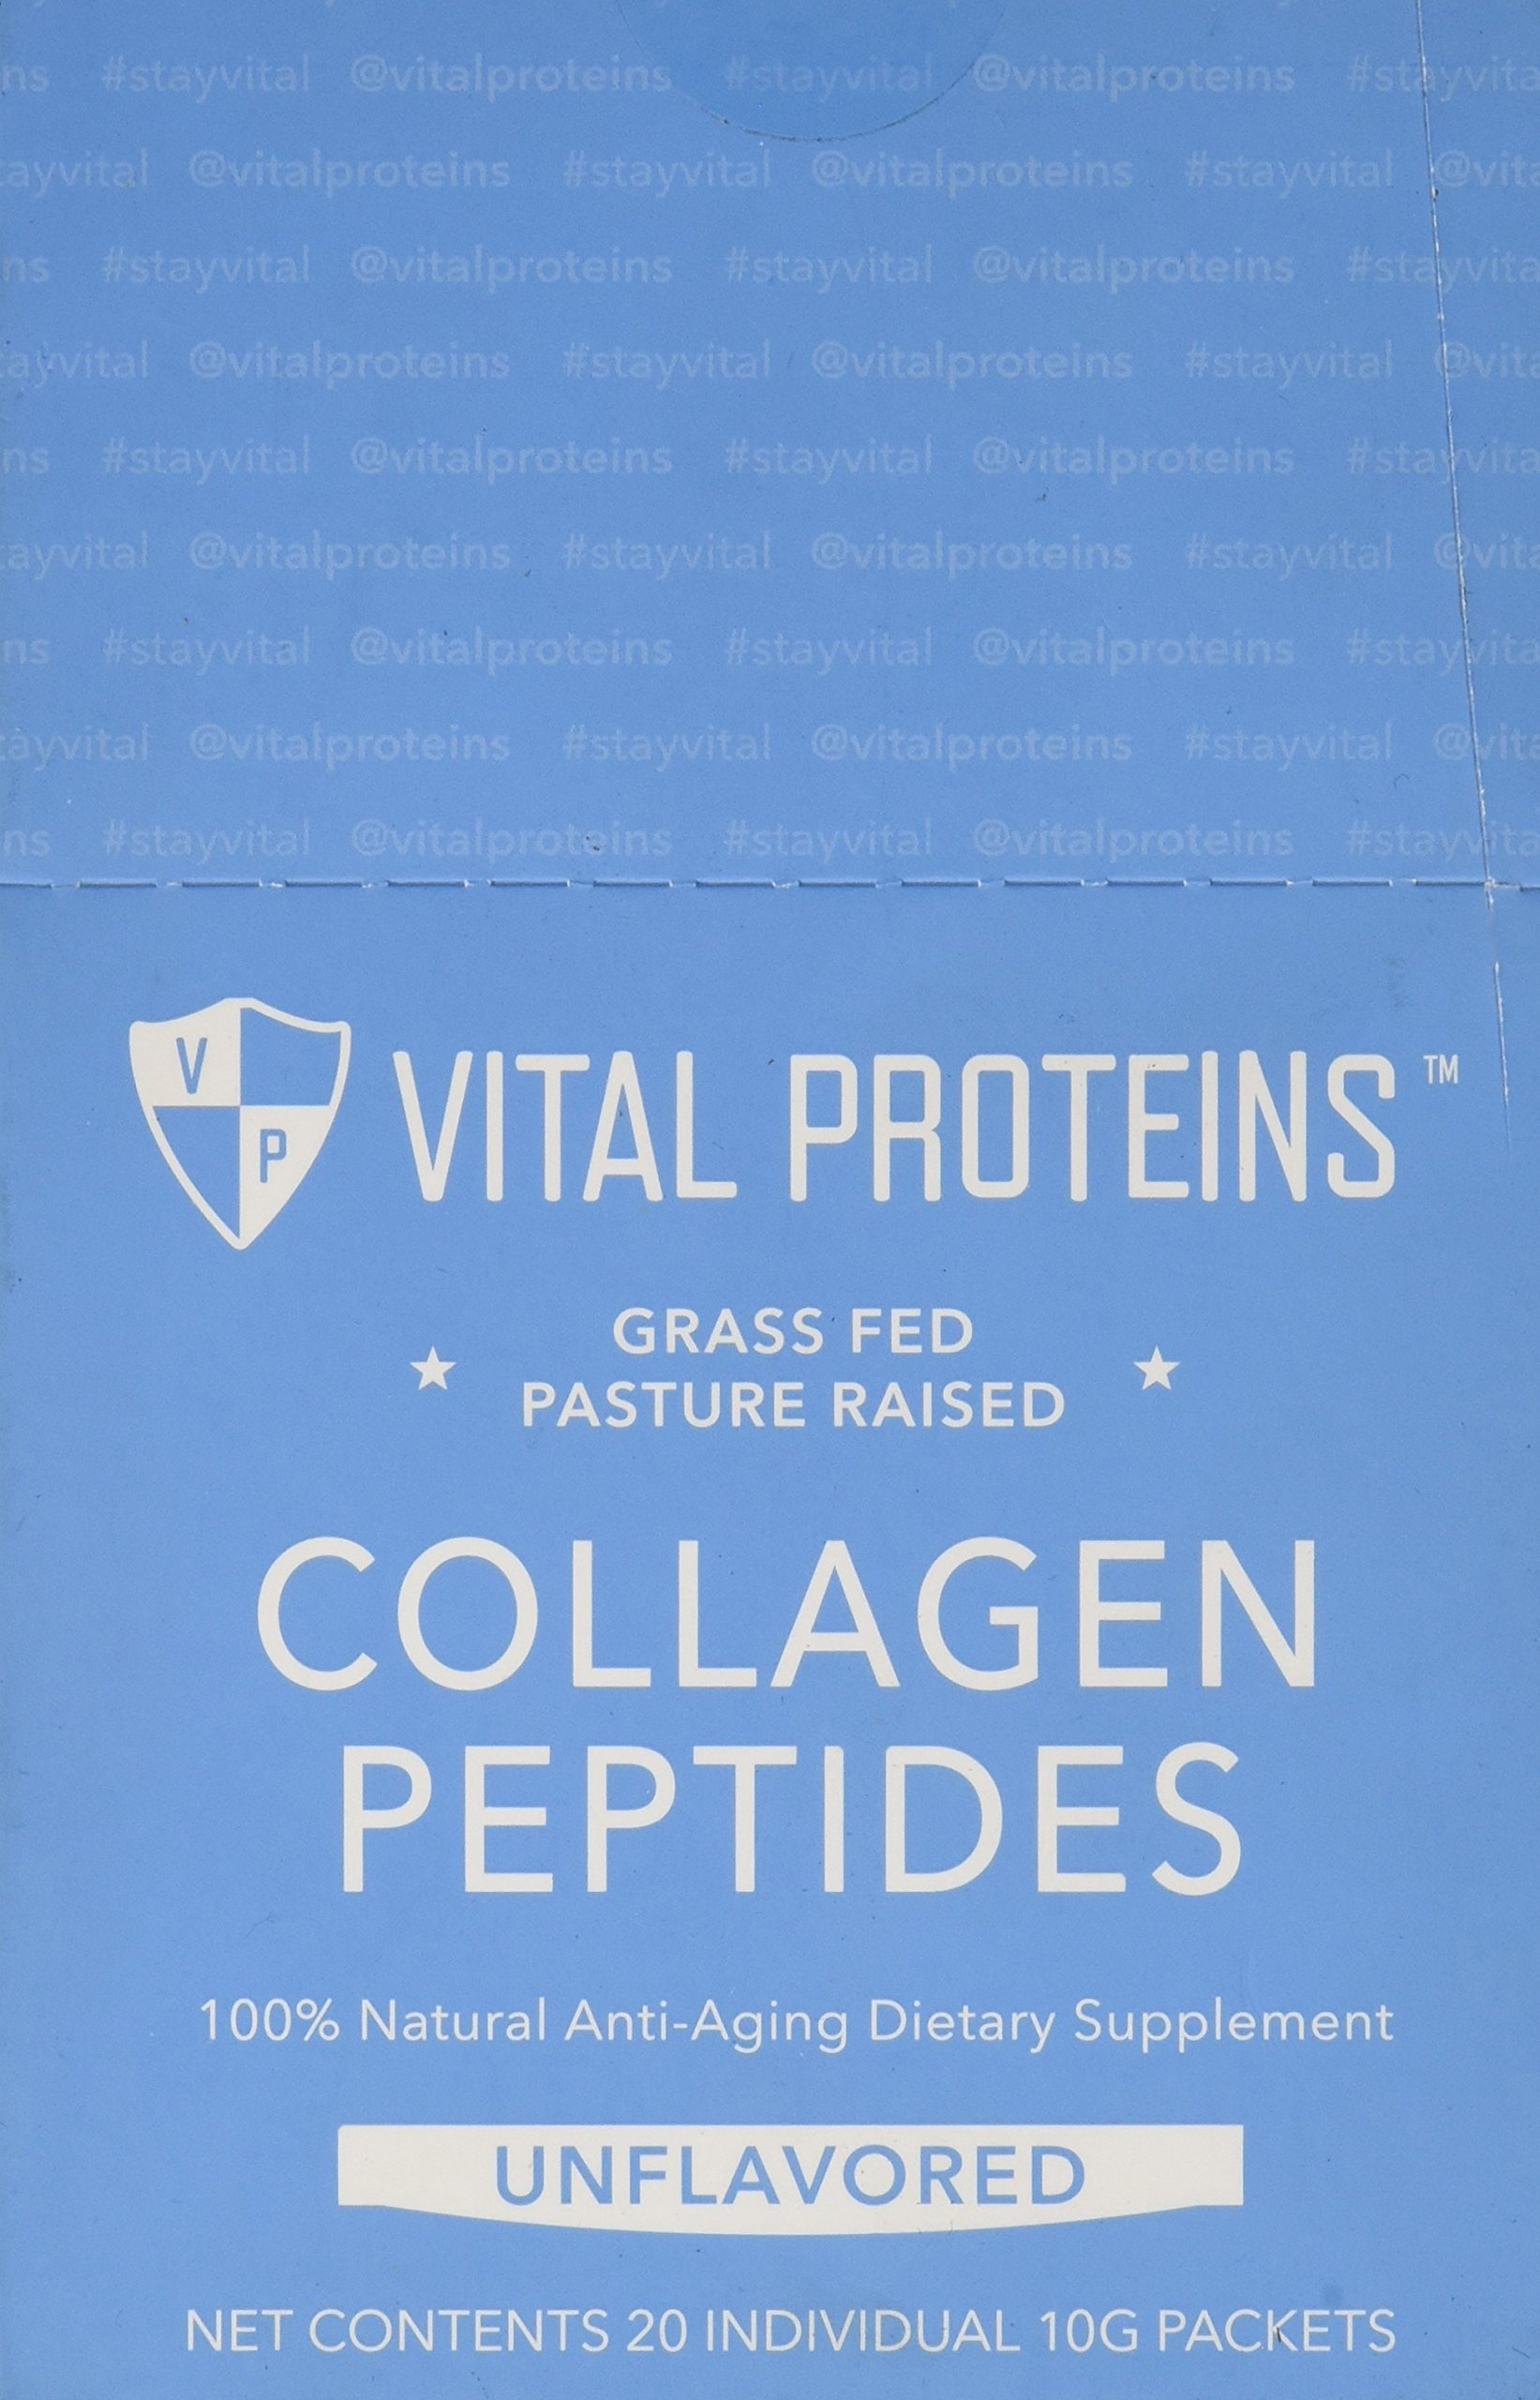 Vital Proteins Grass-Fed Collagen Peptide Stick Packs (10 grams) (Box of 20)